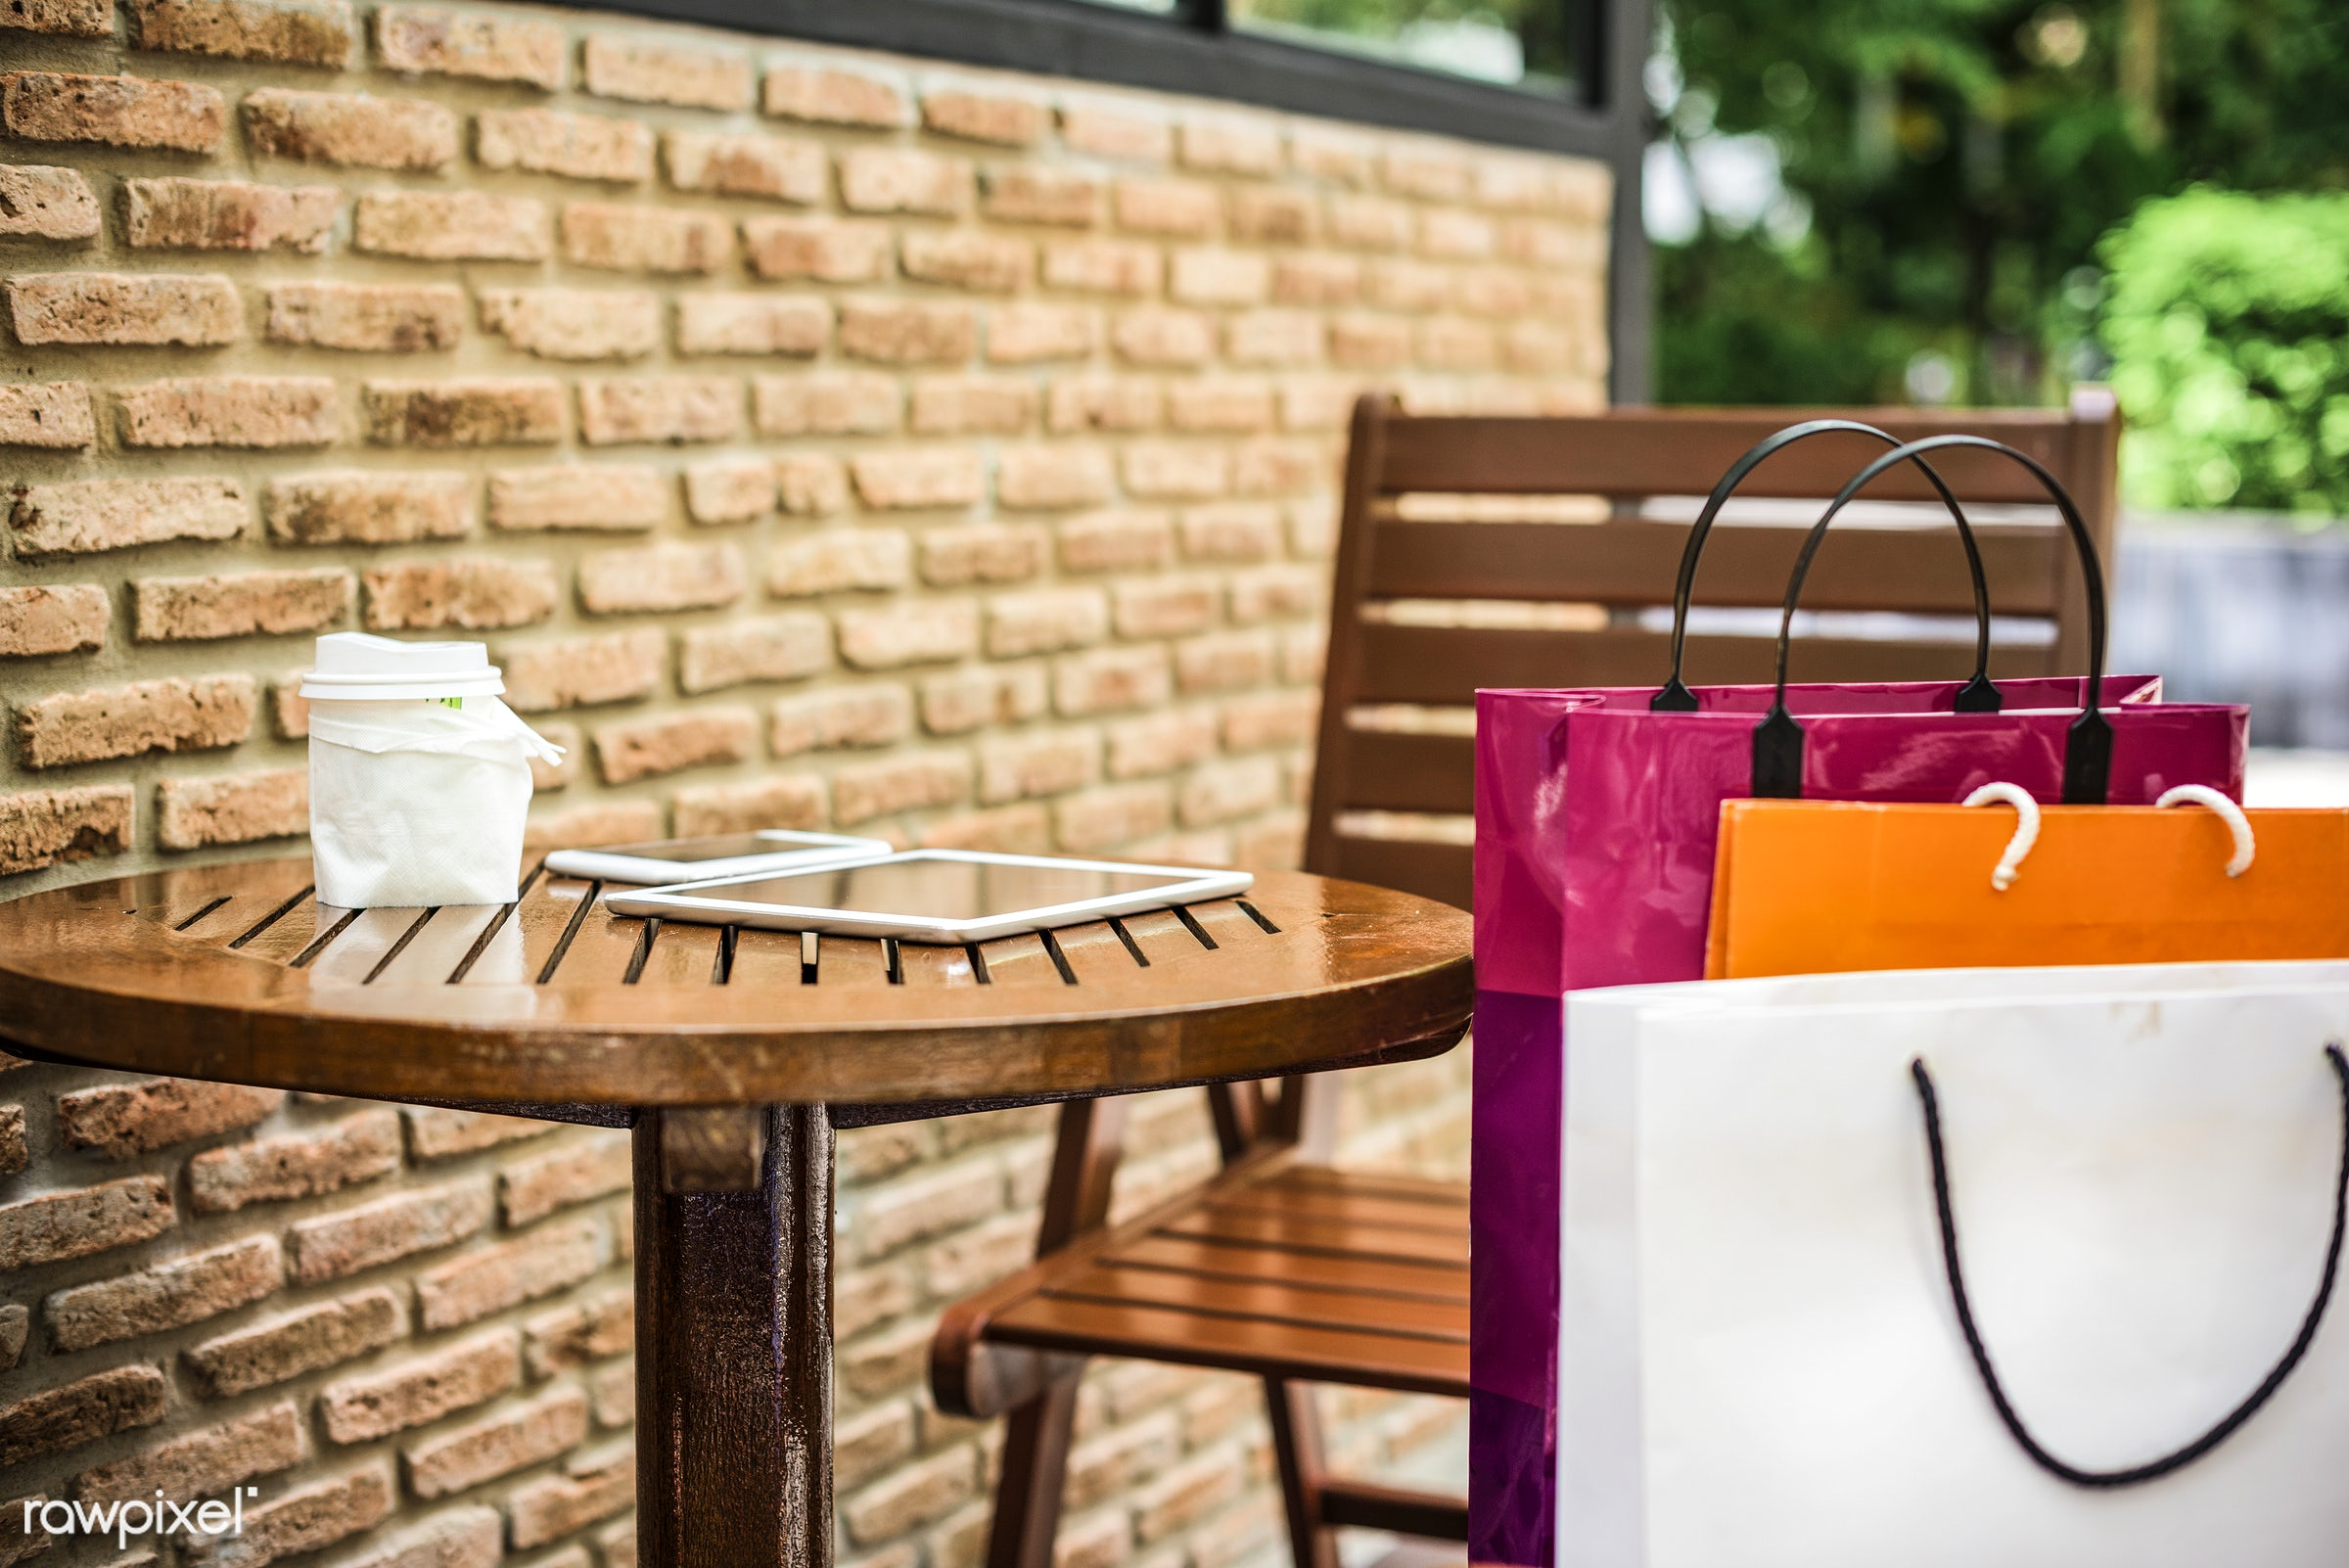 Shopping bags on an outdoor cafe - sale, shopping, commerce, shop, shopper, technology, store, spend, coffee shop, purchase...